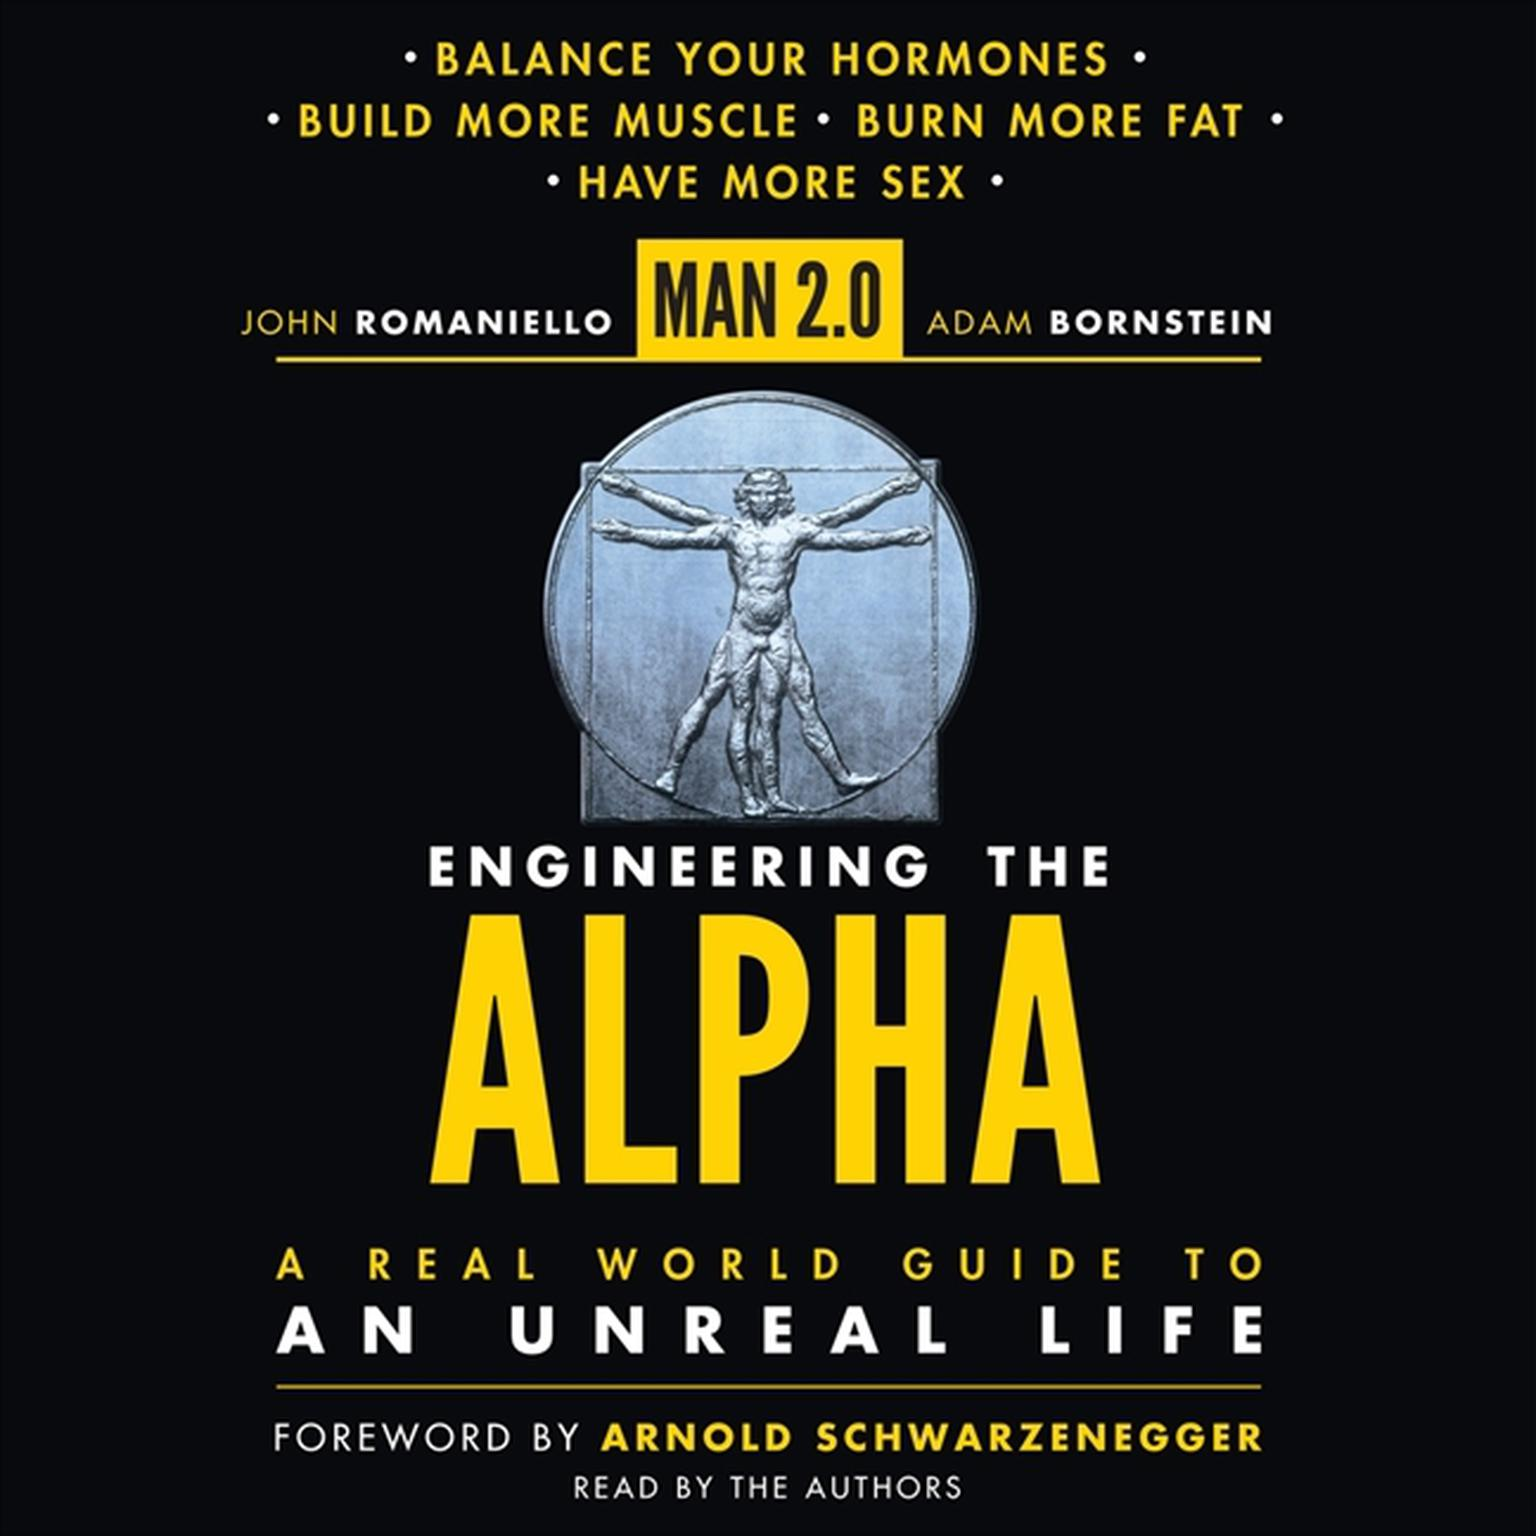 Printable Man 2.0 Engineering the Alpha: A Real World Guide to an Unreal Life: Build More Muscle. Burn More Fat. Have More Sex Audiobook Cover Art